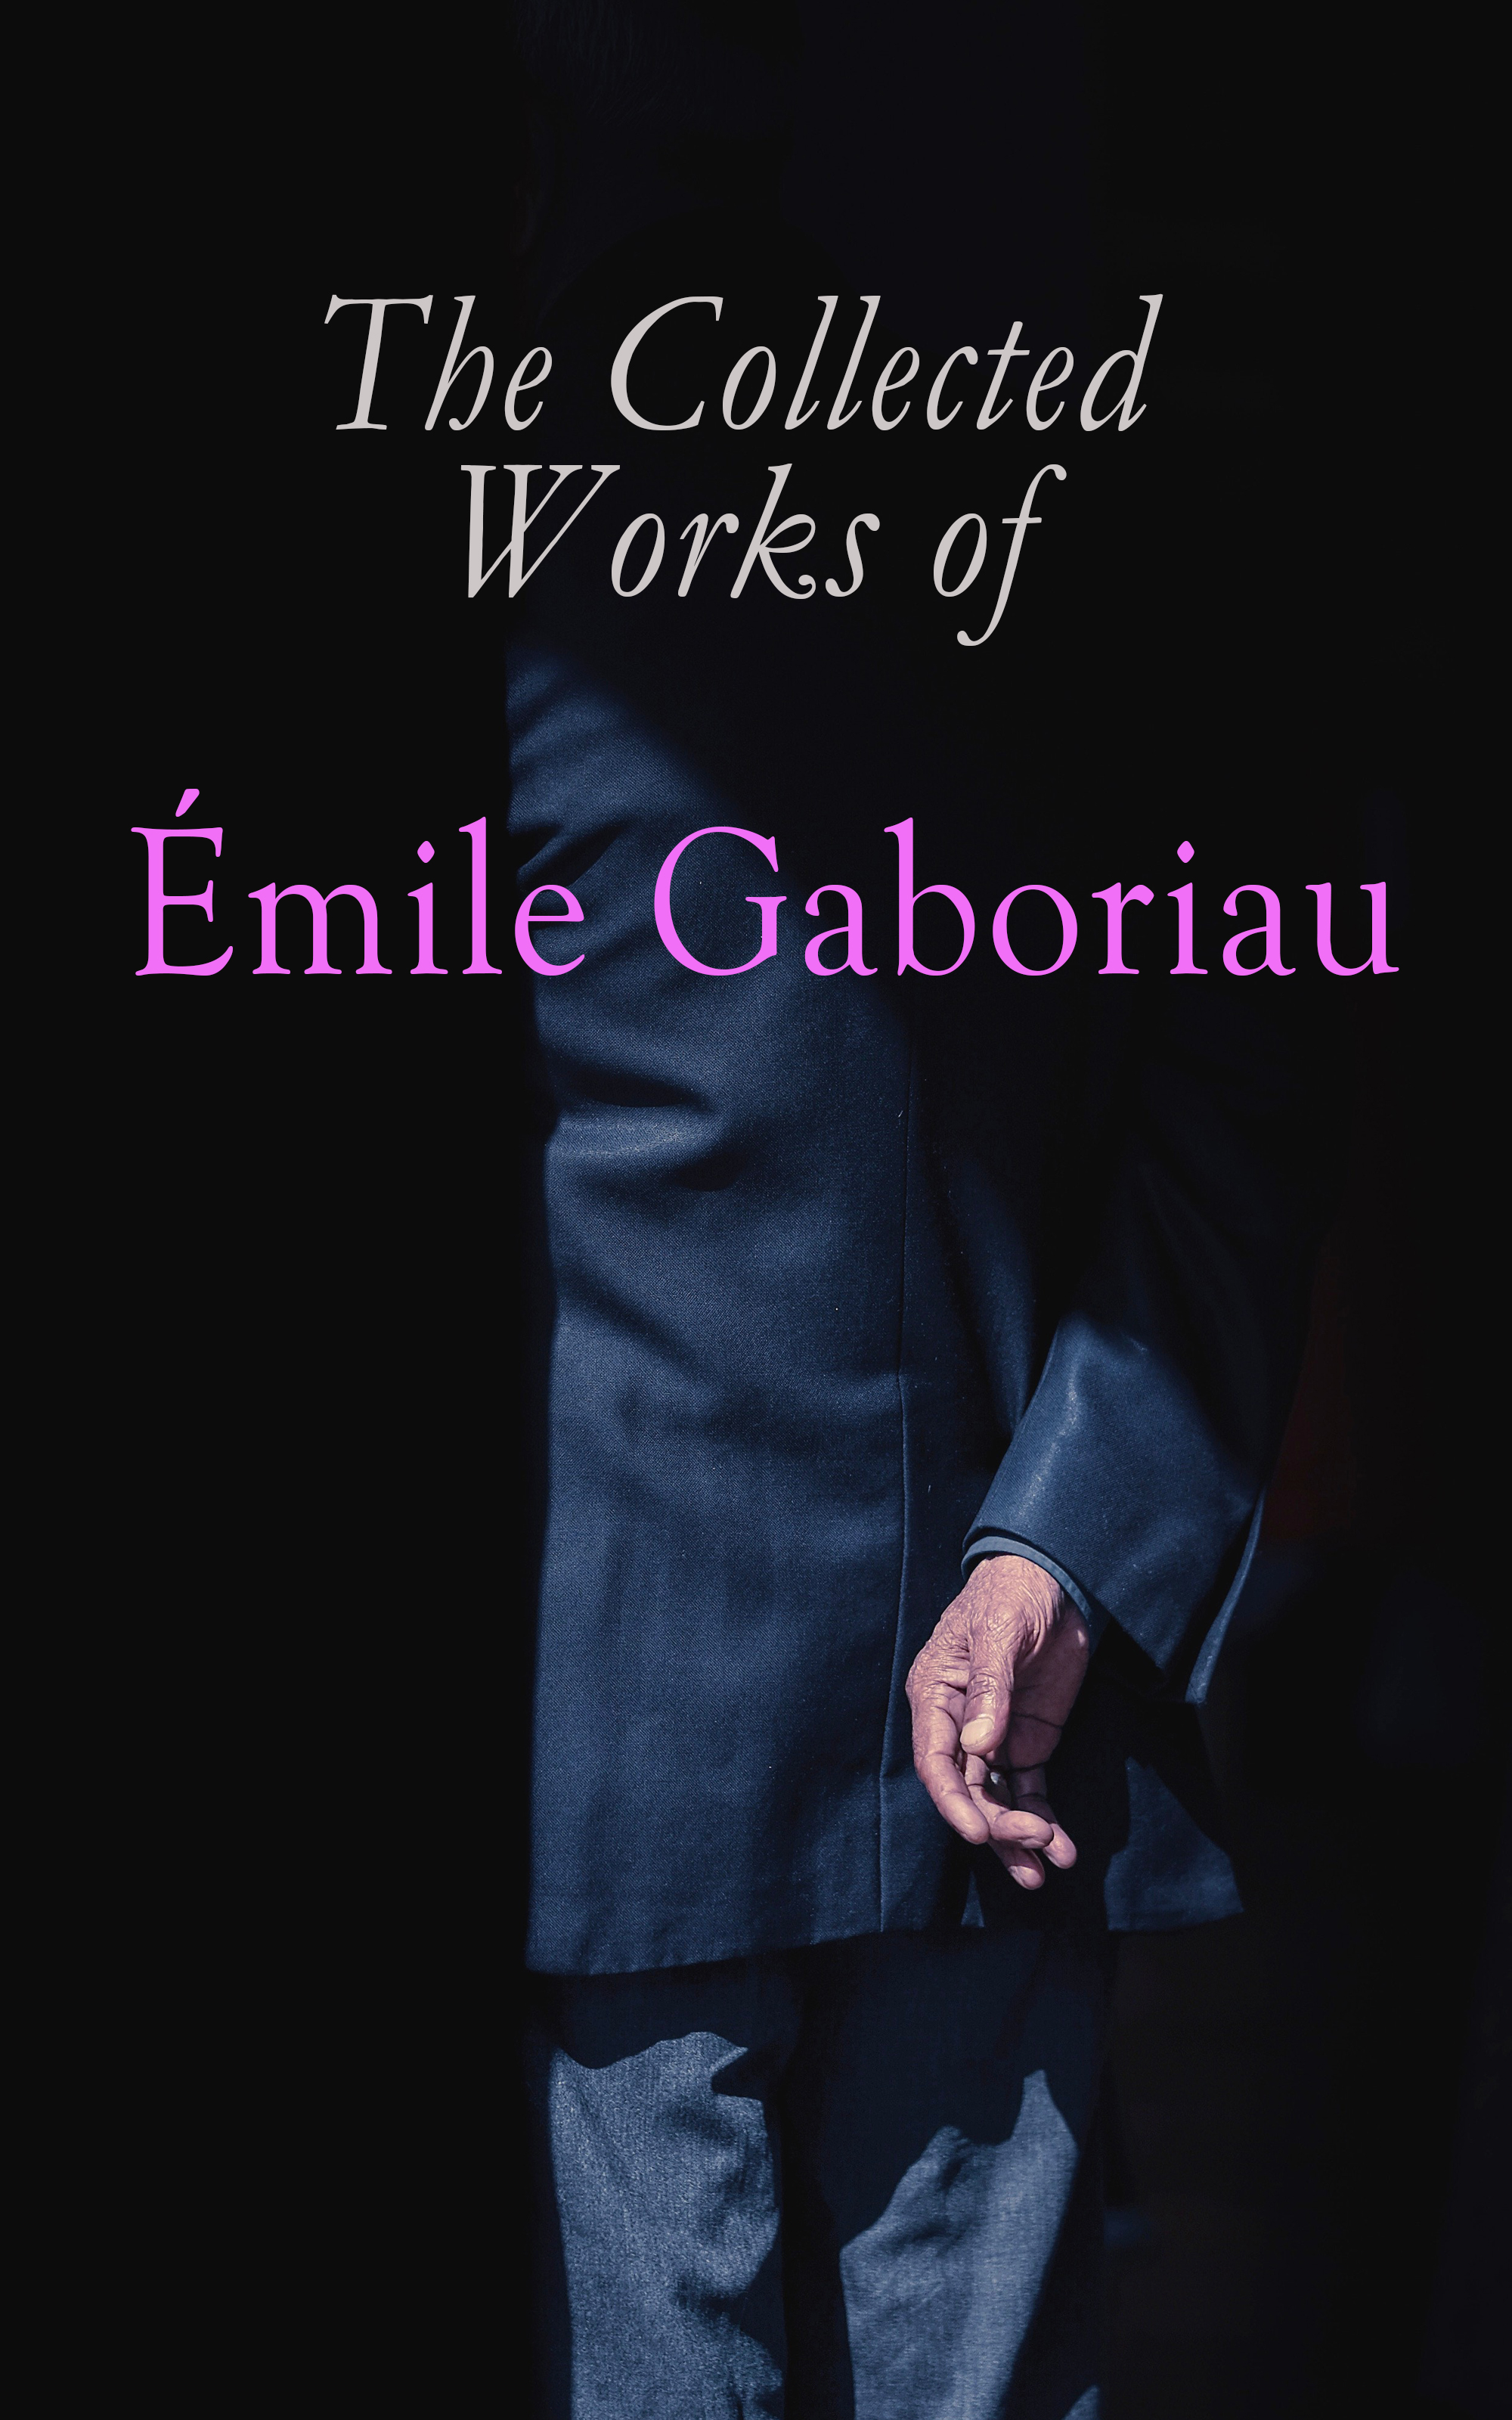 Emile Gaboriau The Collected Works of Émile Gaboriau emile gaboriau les amours d une empoisonneuse